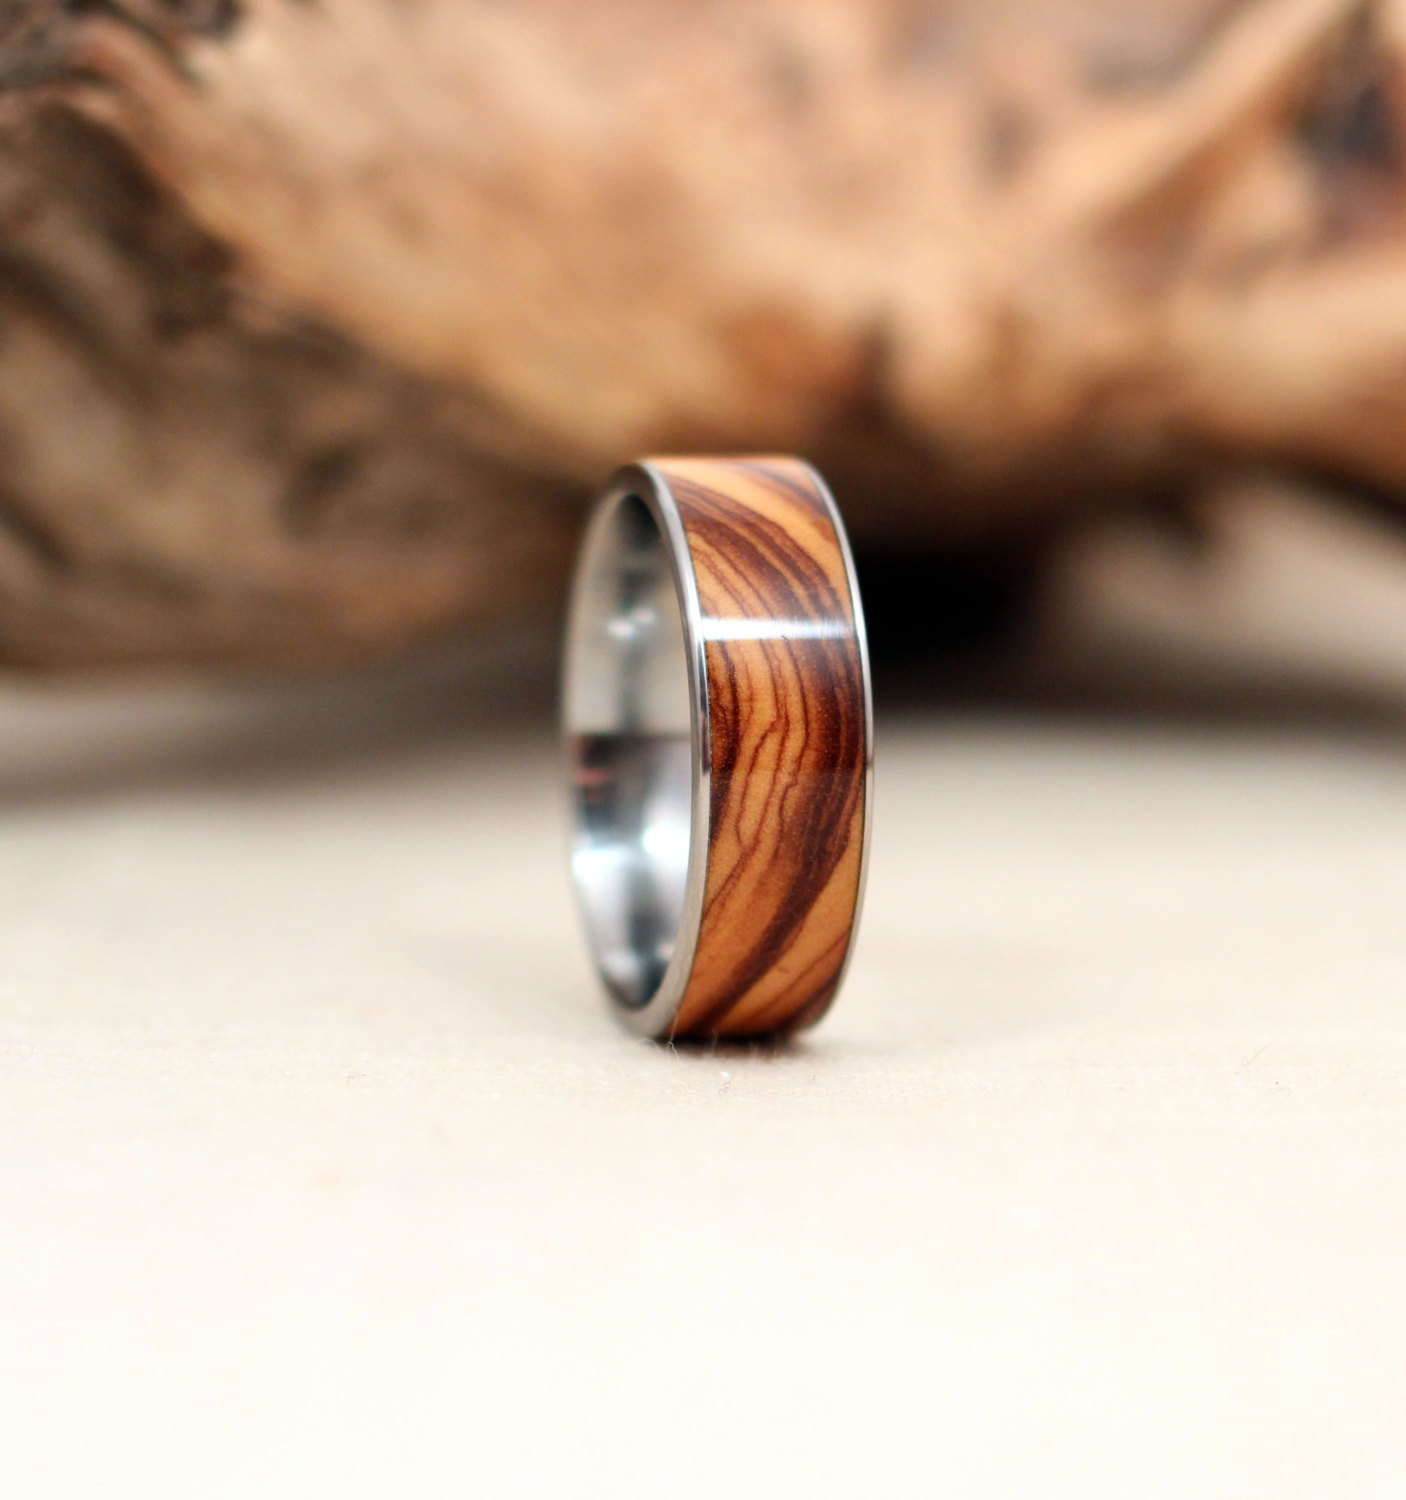 titanium and wood rings wooden wedding rings Bethlehem Olivewood Inlay Wooden Ring Lined With Titanium